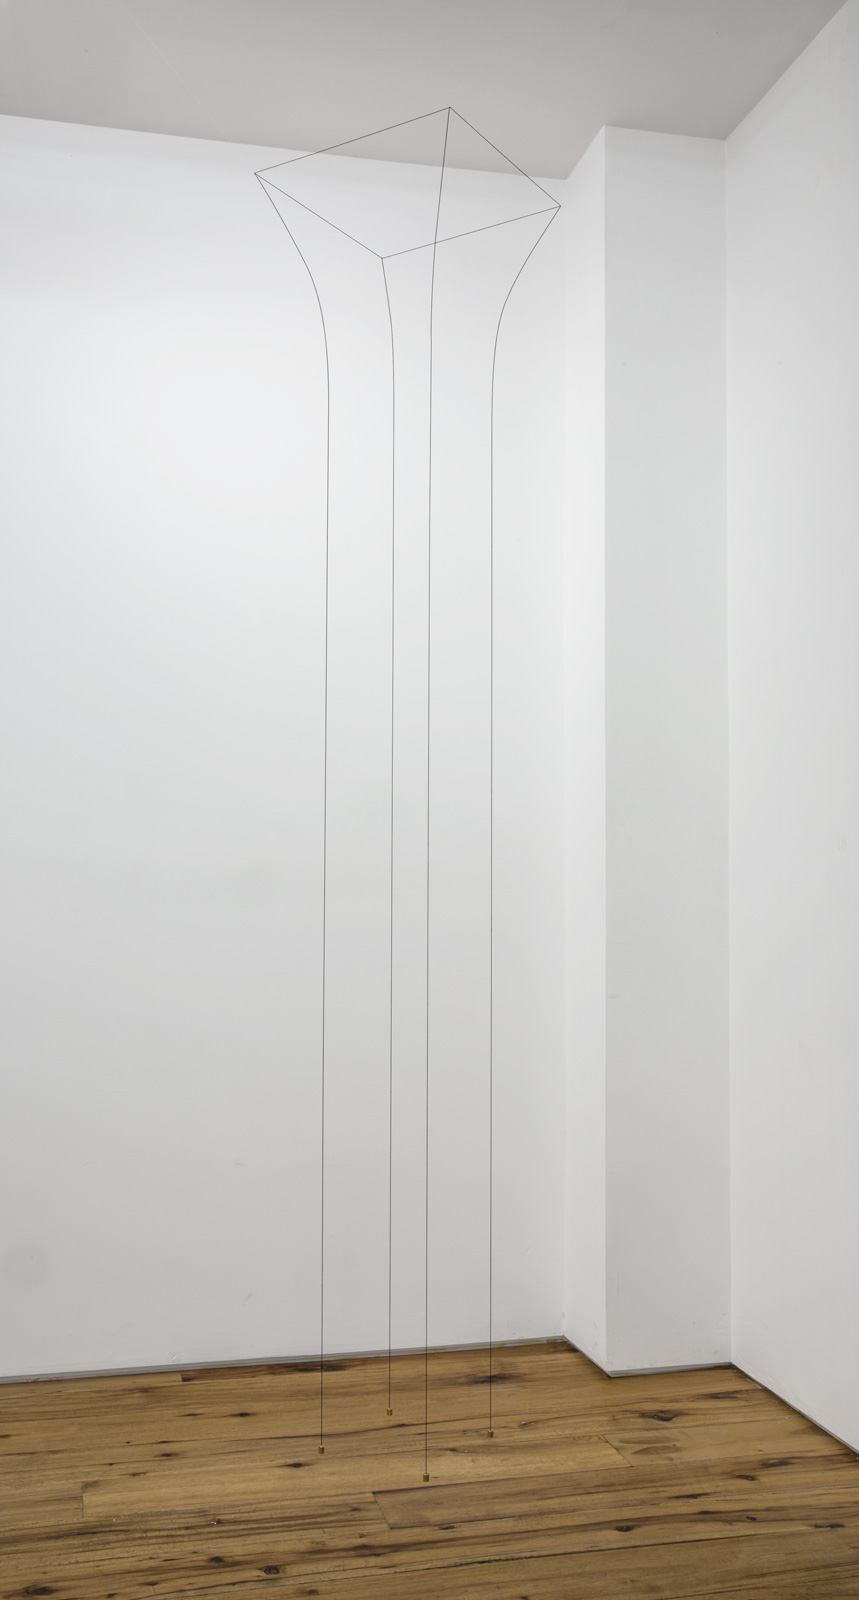 2016 String, fishing wire, metal rod, weight, paint 97 x 17 x 17 inches - Marc Straus Gallery